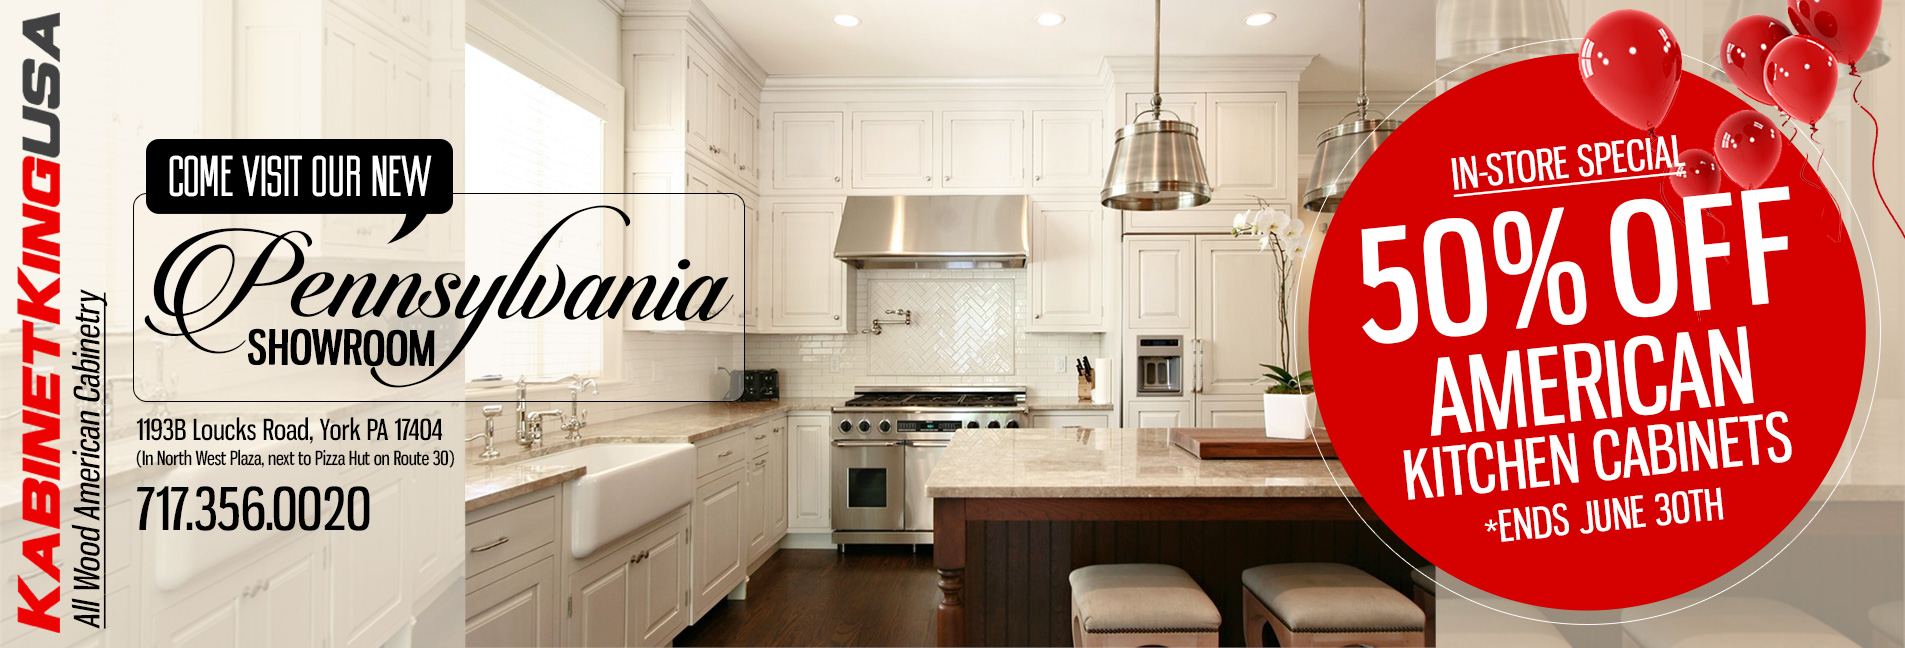 kabinetking best rated kitchen cabinets Inset Kitchen Cabinets Pennsylvania Showroom